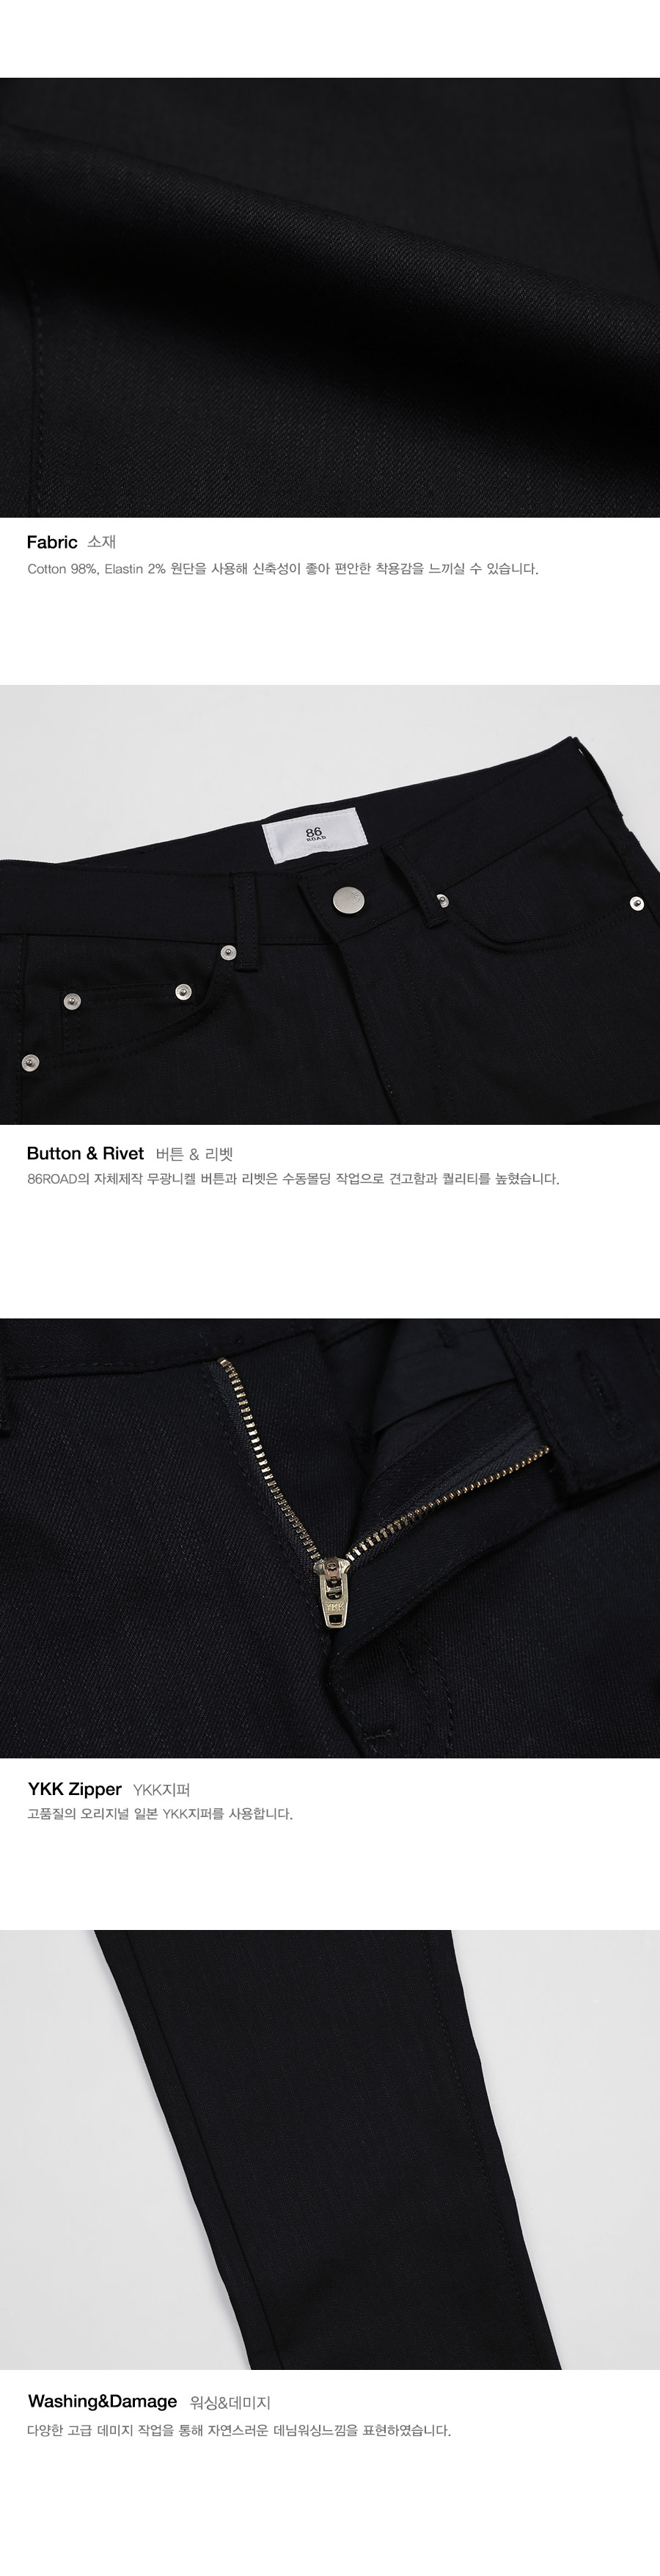 86로드(86ROAD) 1611 pure black jeans